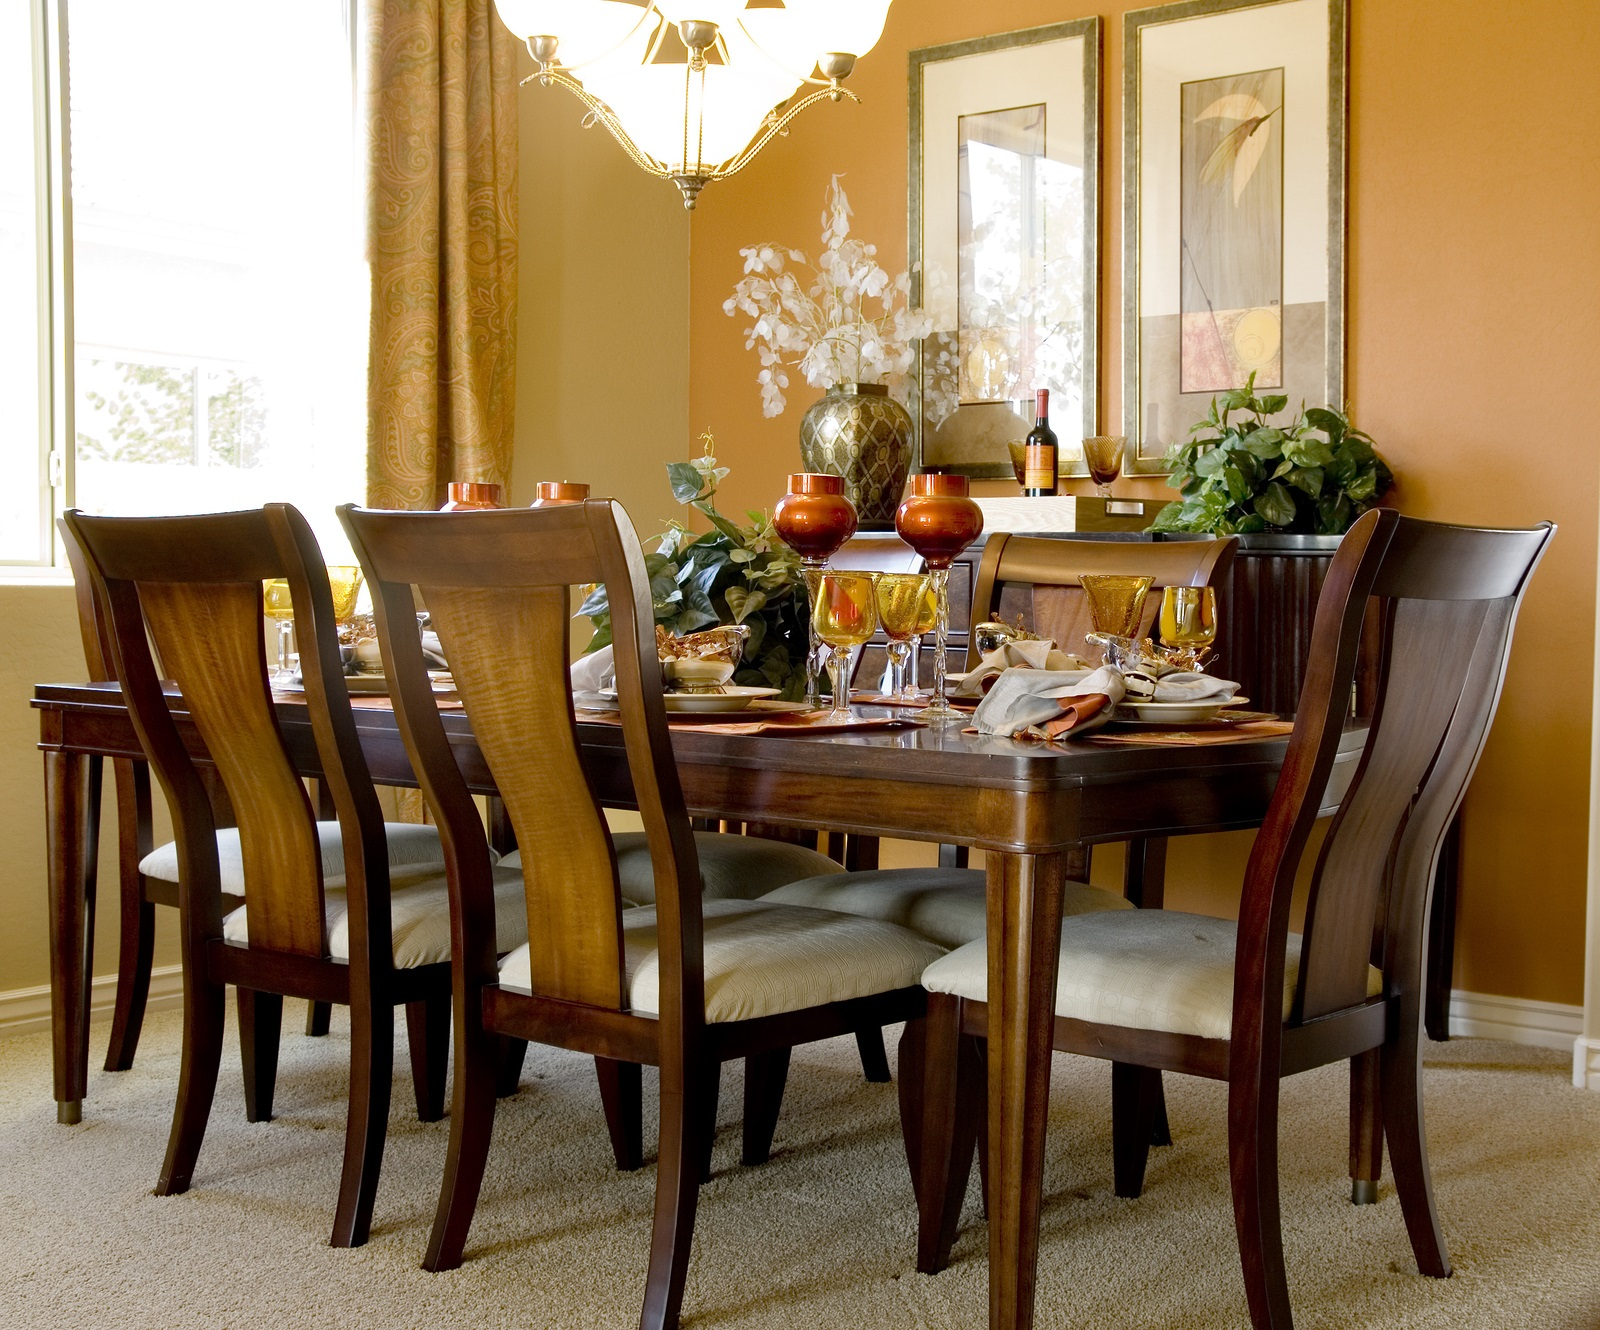 How To Pack And Move A Dining Room Table Self Storage Units Stop - How big is a dining room table